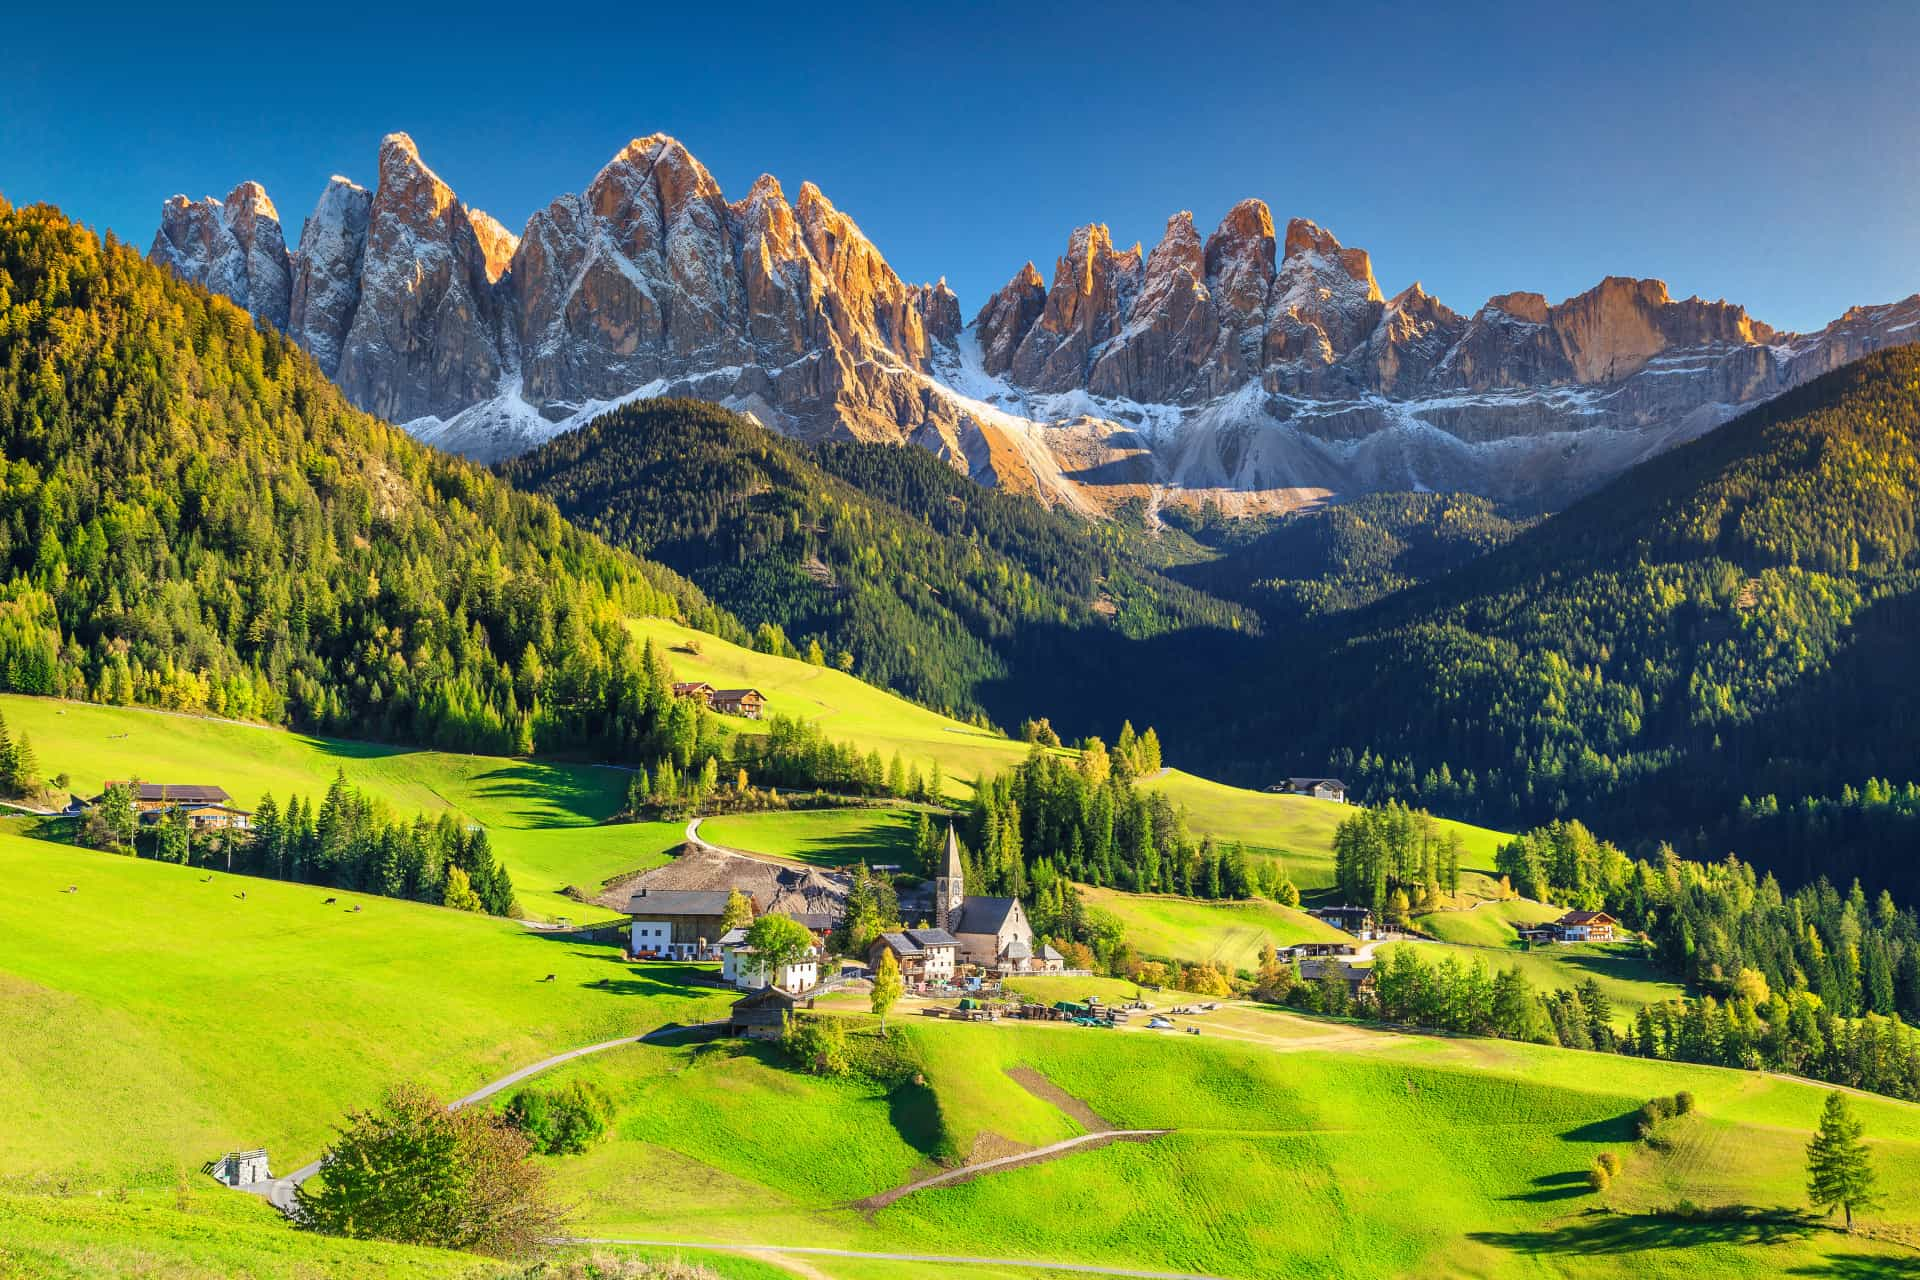 Discover the world's most incredible mountain paradises